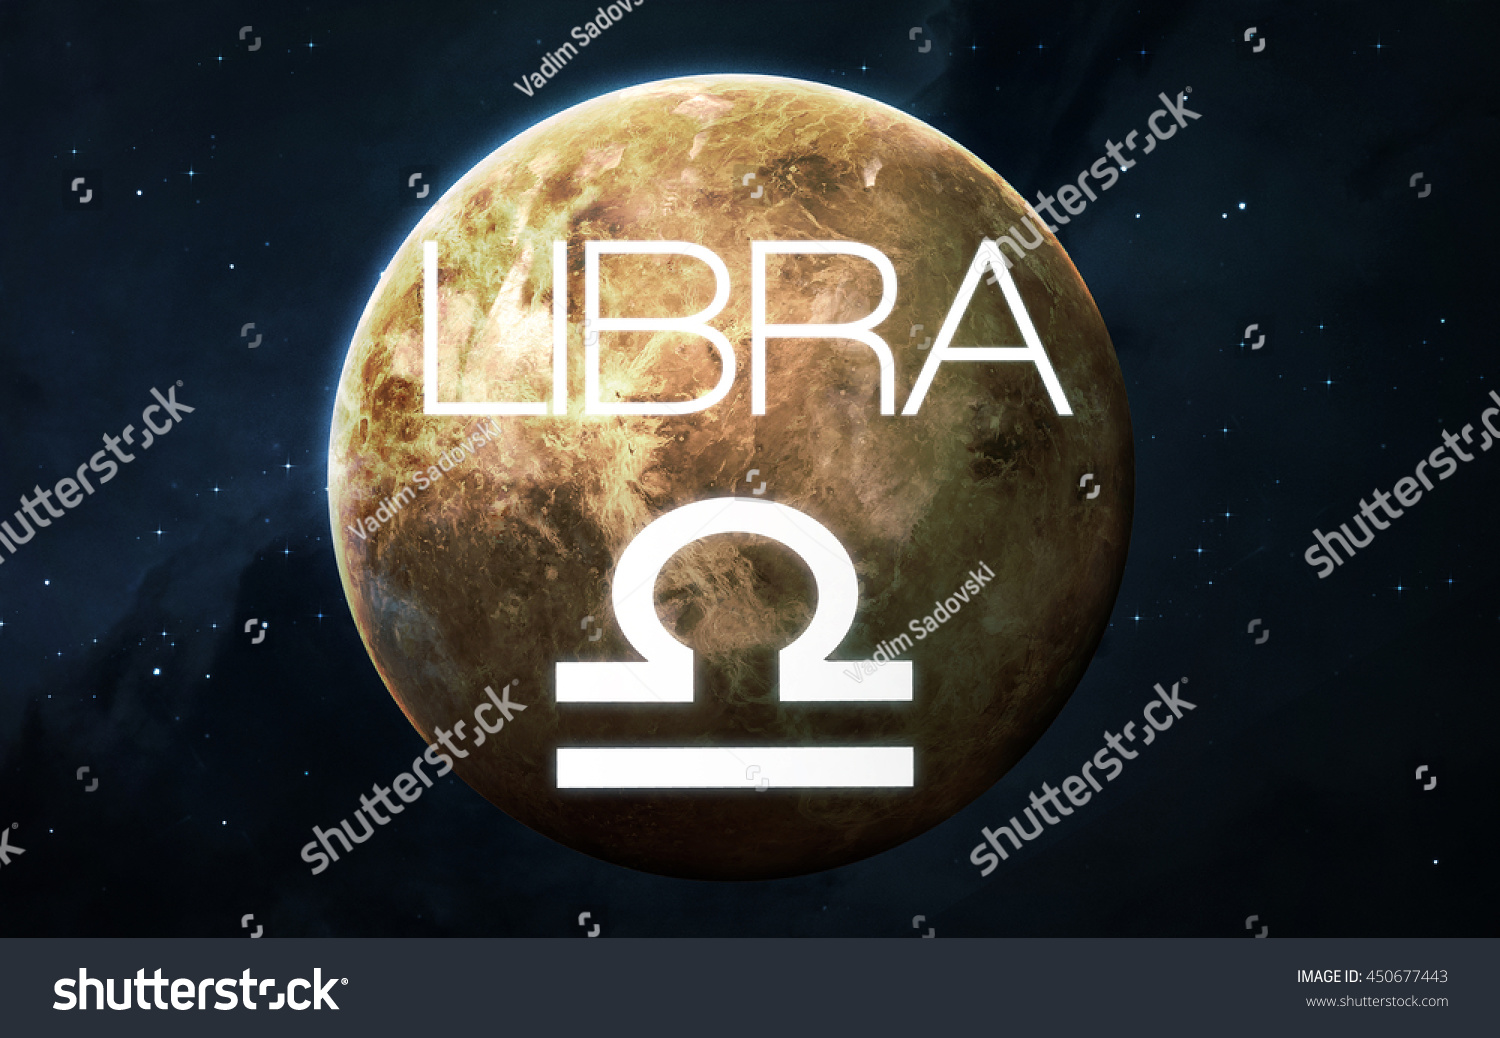 Zodiac Sign Libra Elements This Image Stock Photo (Edit Now